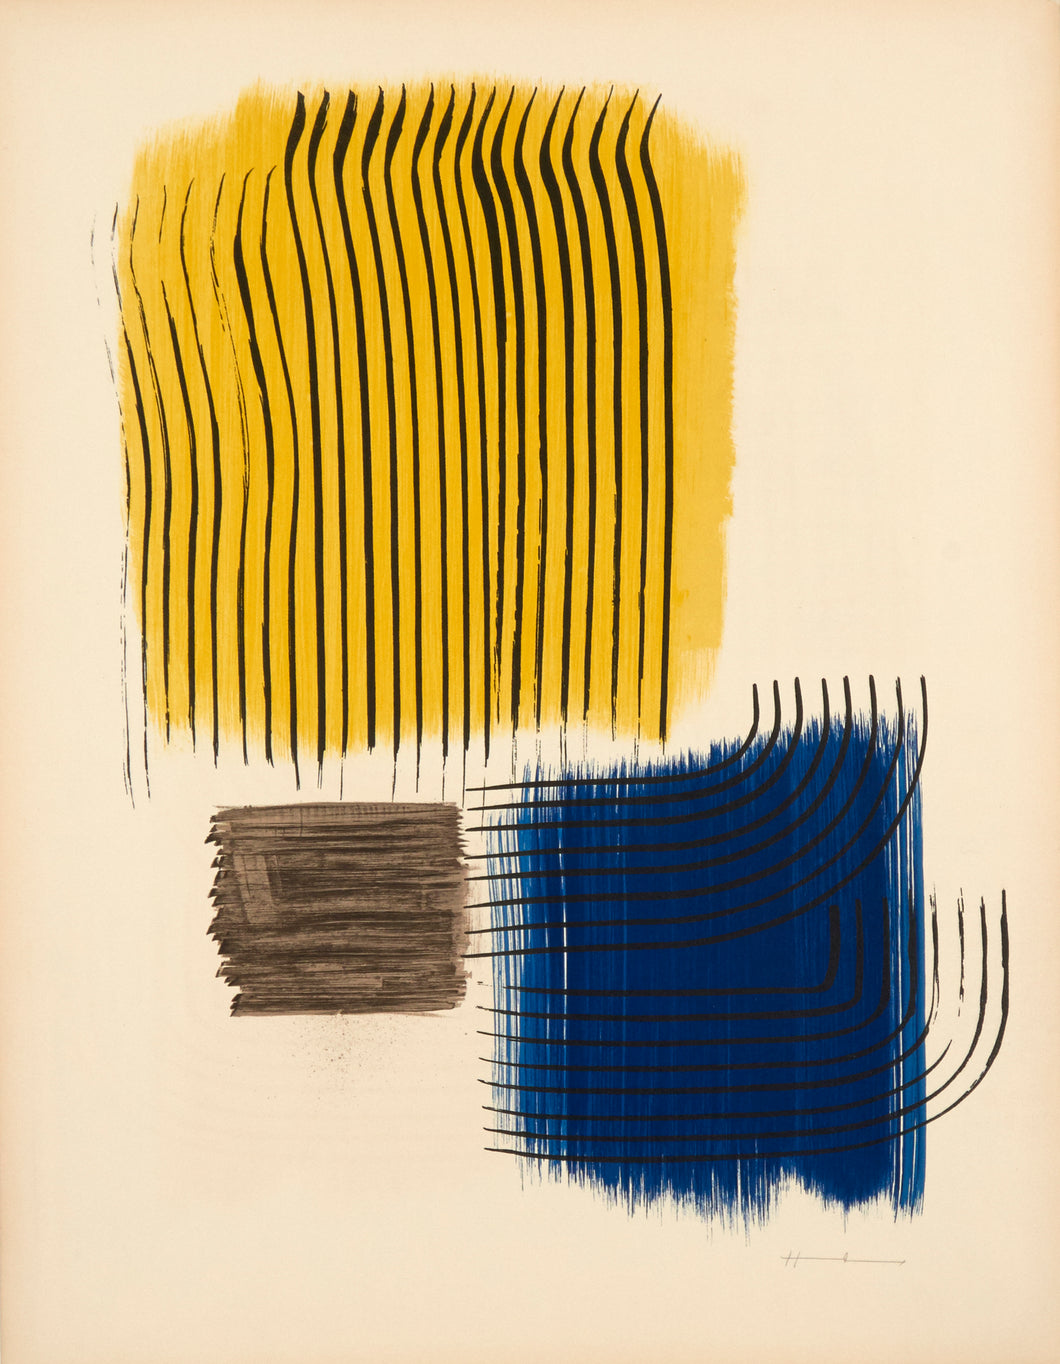 Musee National D'art Moderne de Paris by Hans Hartung